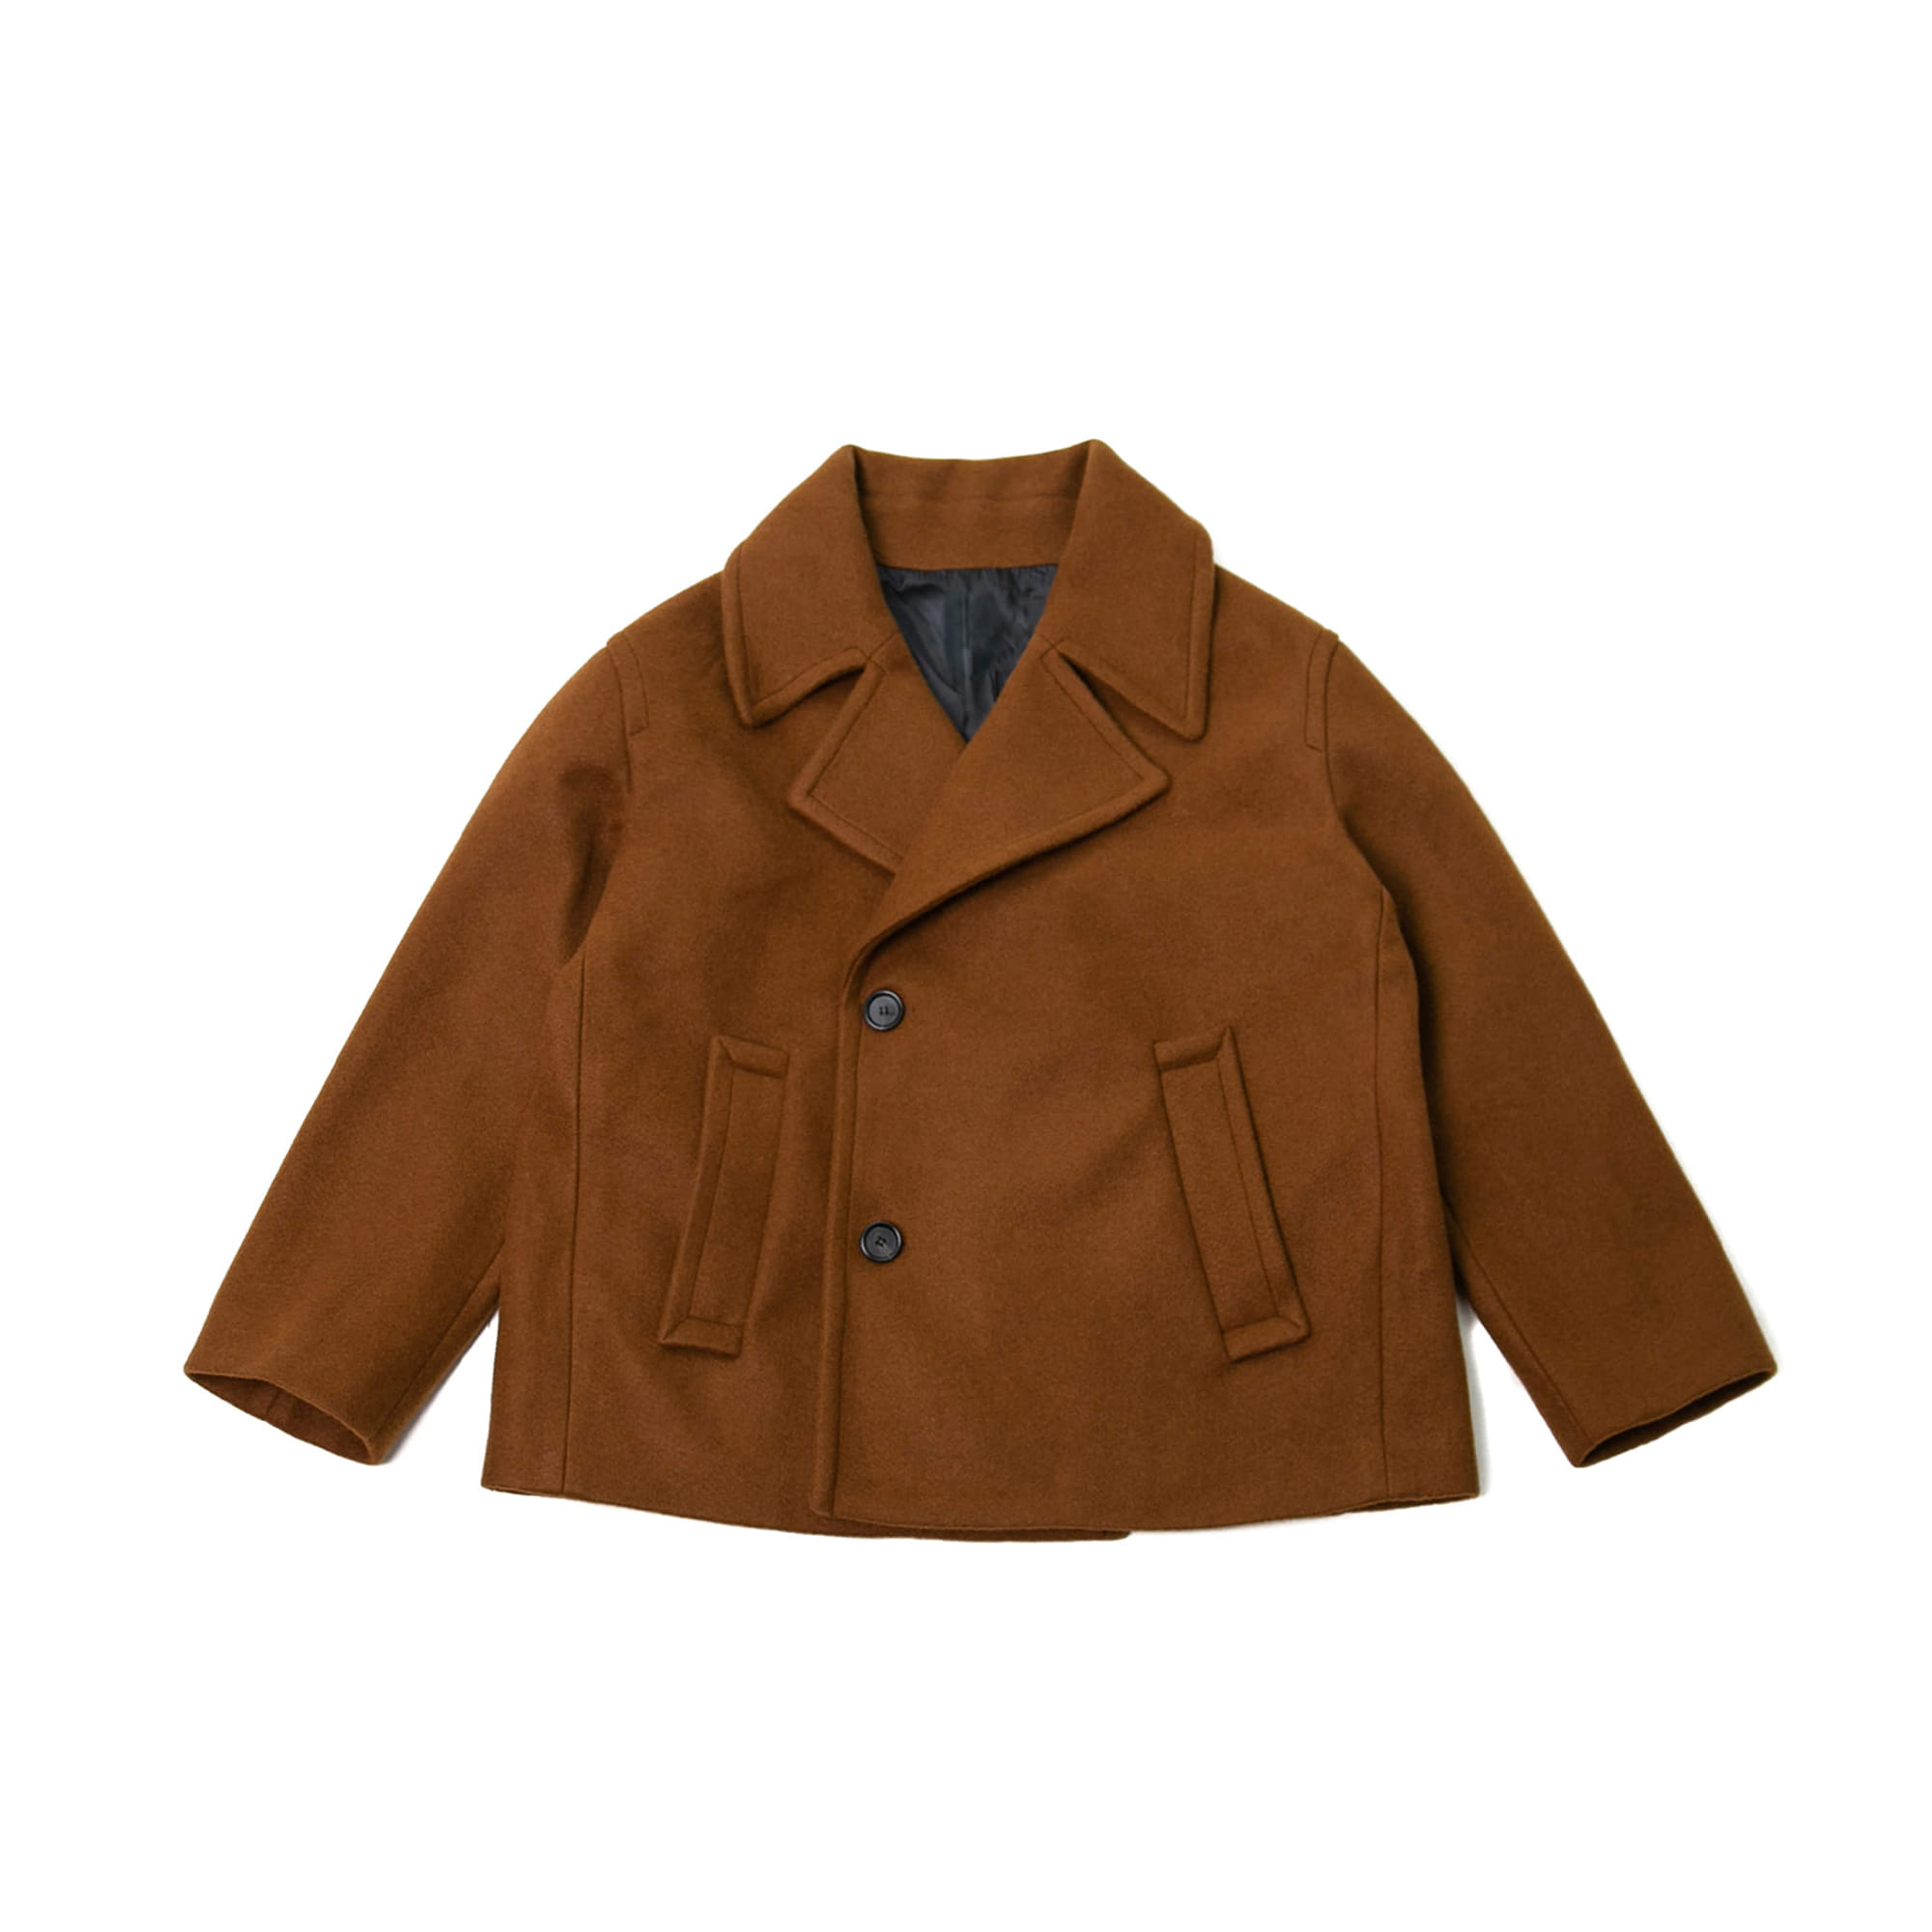 Double Breasted Wool Pea Coat - Brown